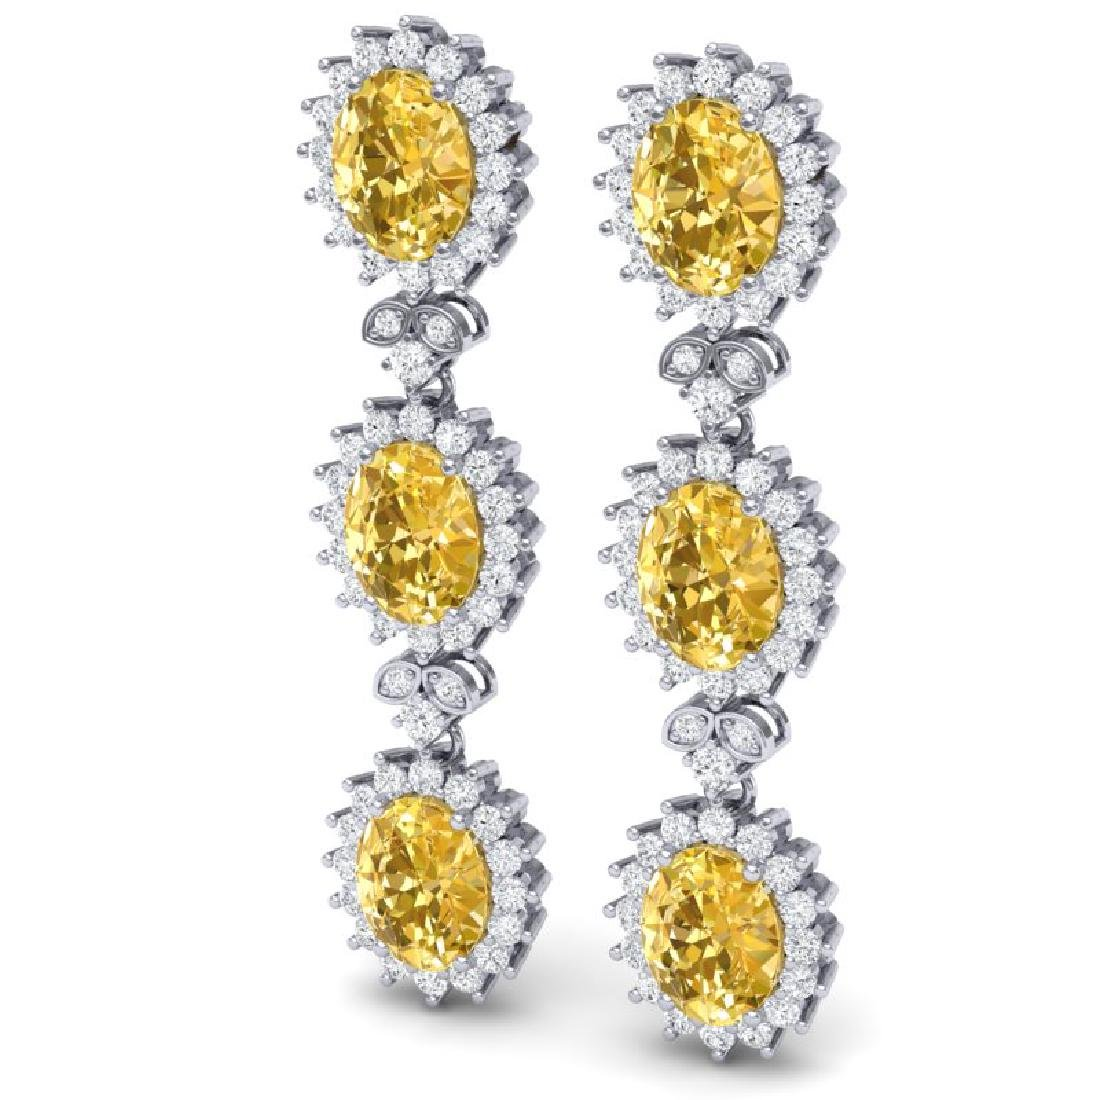 19.06 CTW Royalty Canary Citrine & VS Diamond Earrings - 2